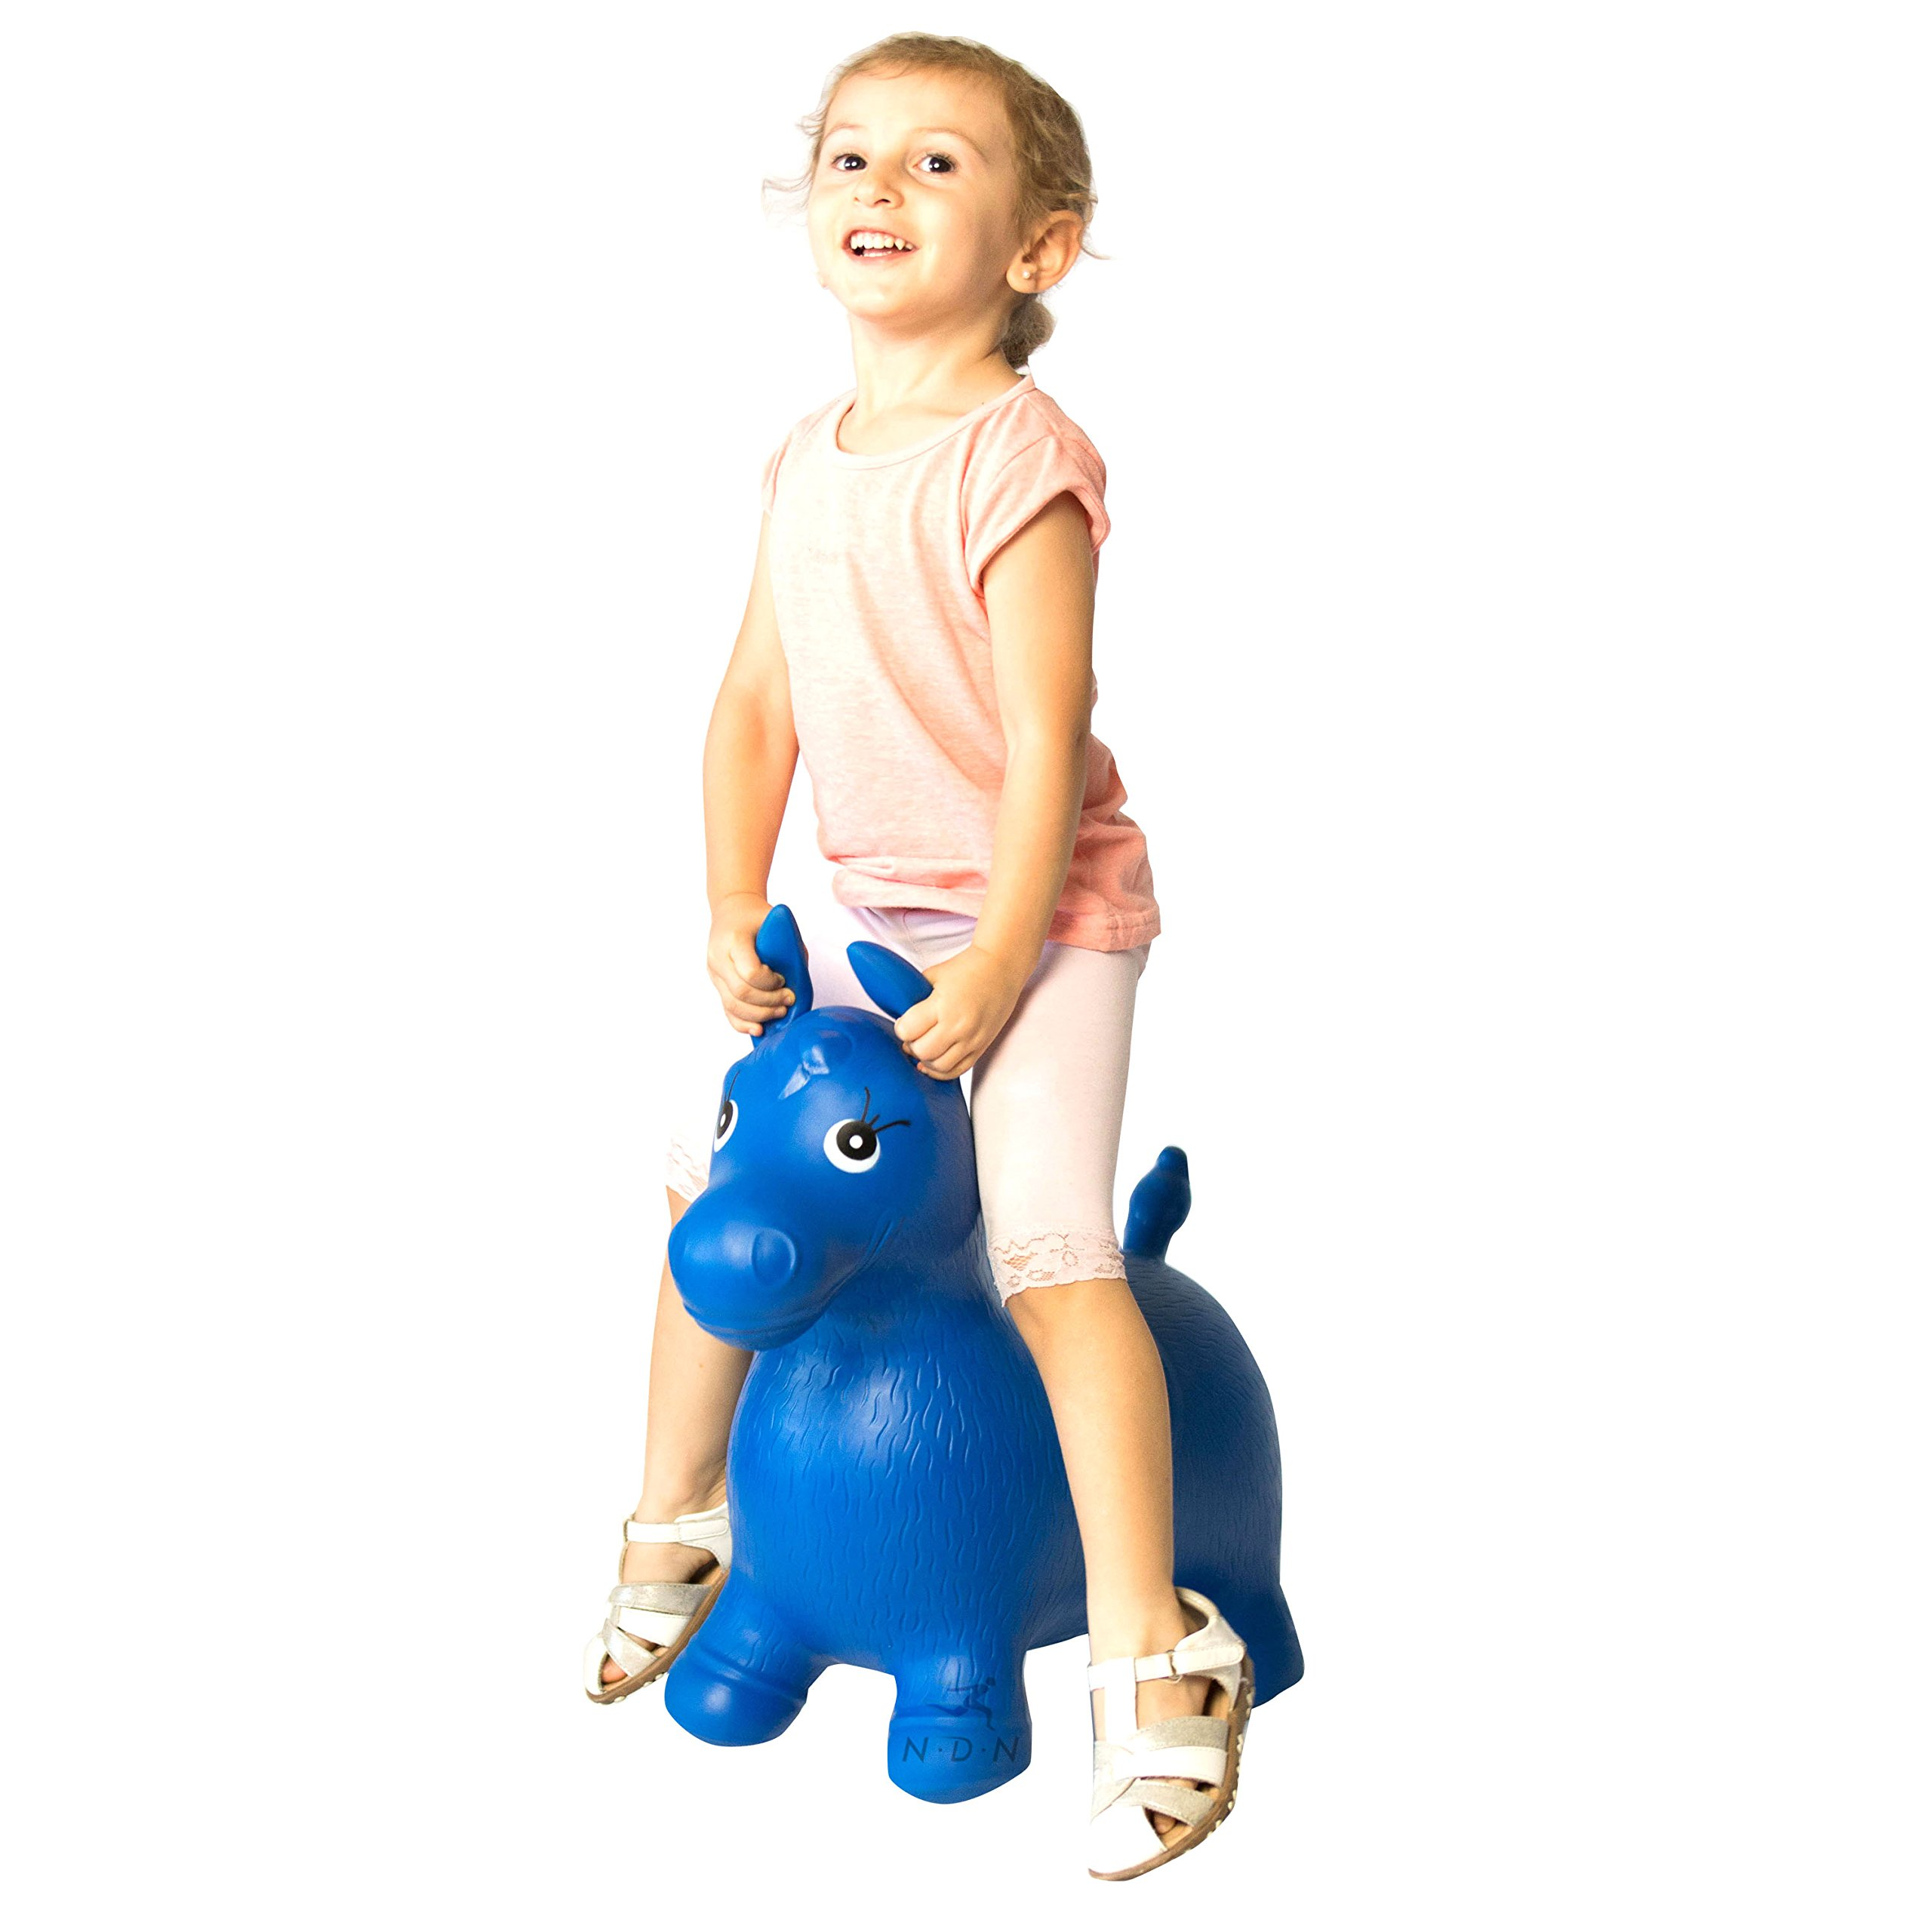 Bouncy animal, bouncy horse inflatable with pump by NDN LINE (Image #3)